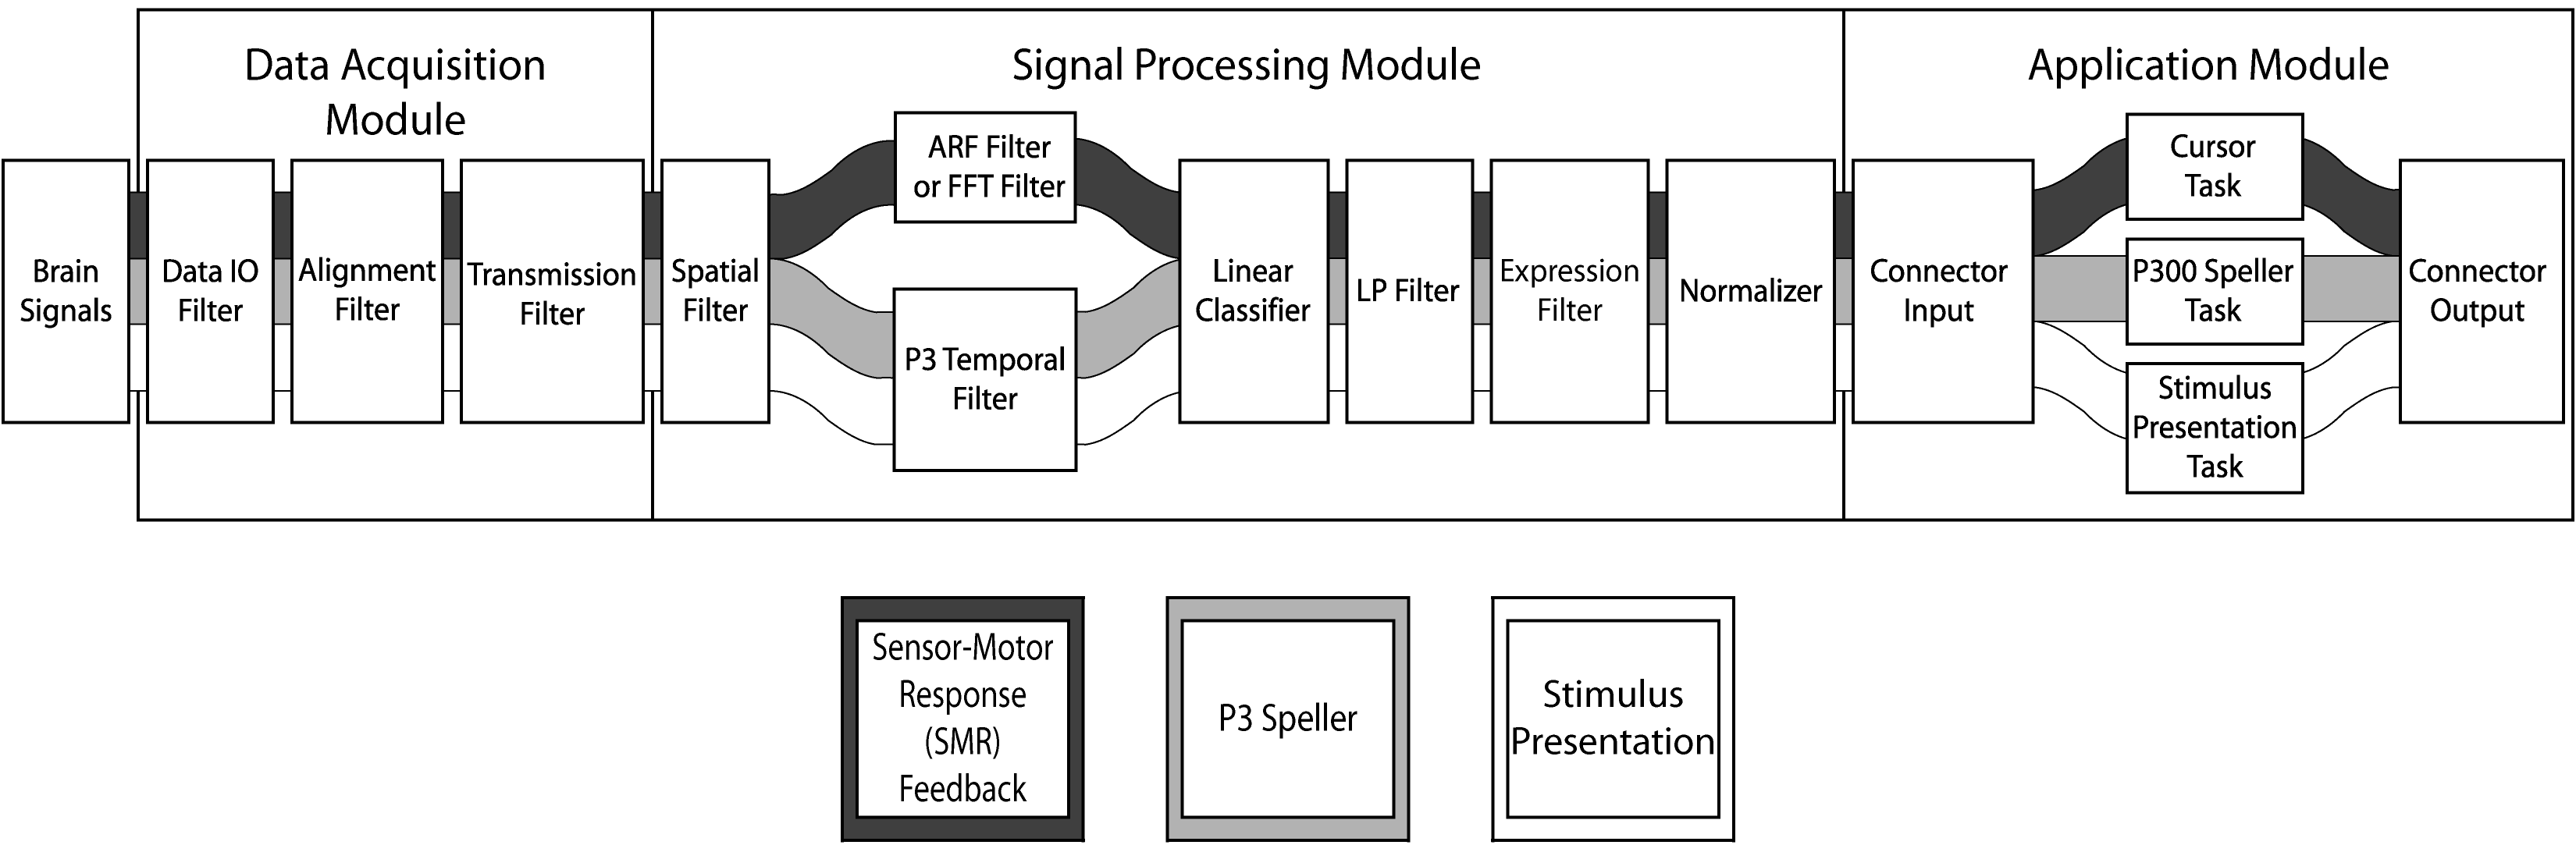 Flowchart of the Data moving through the Filter Pipeline